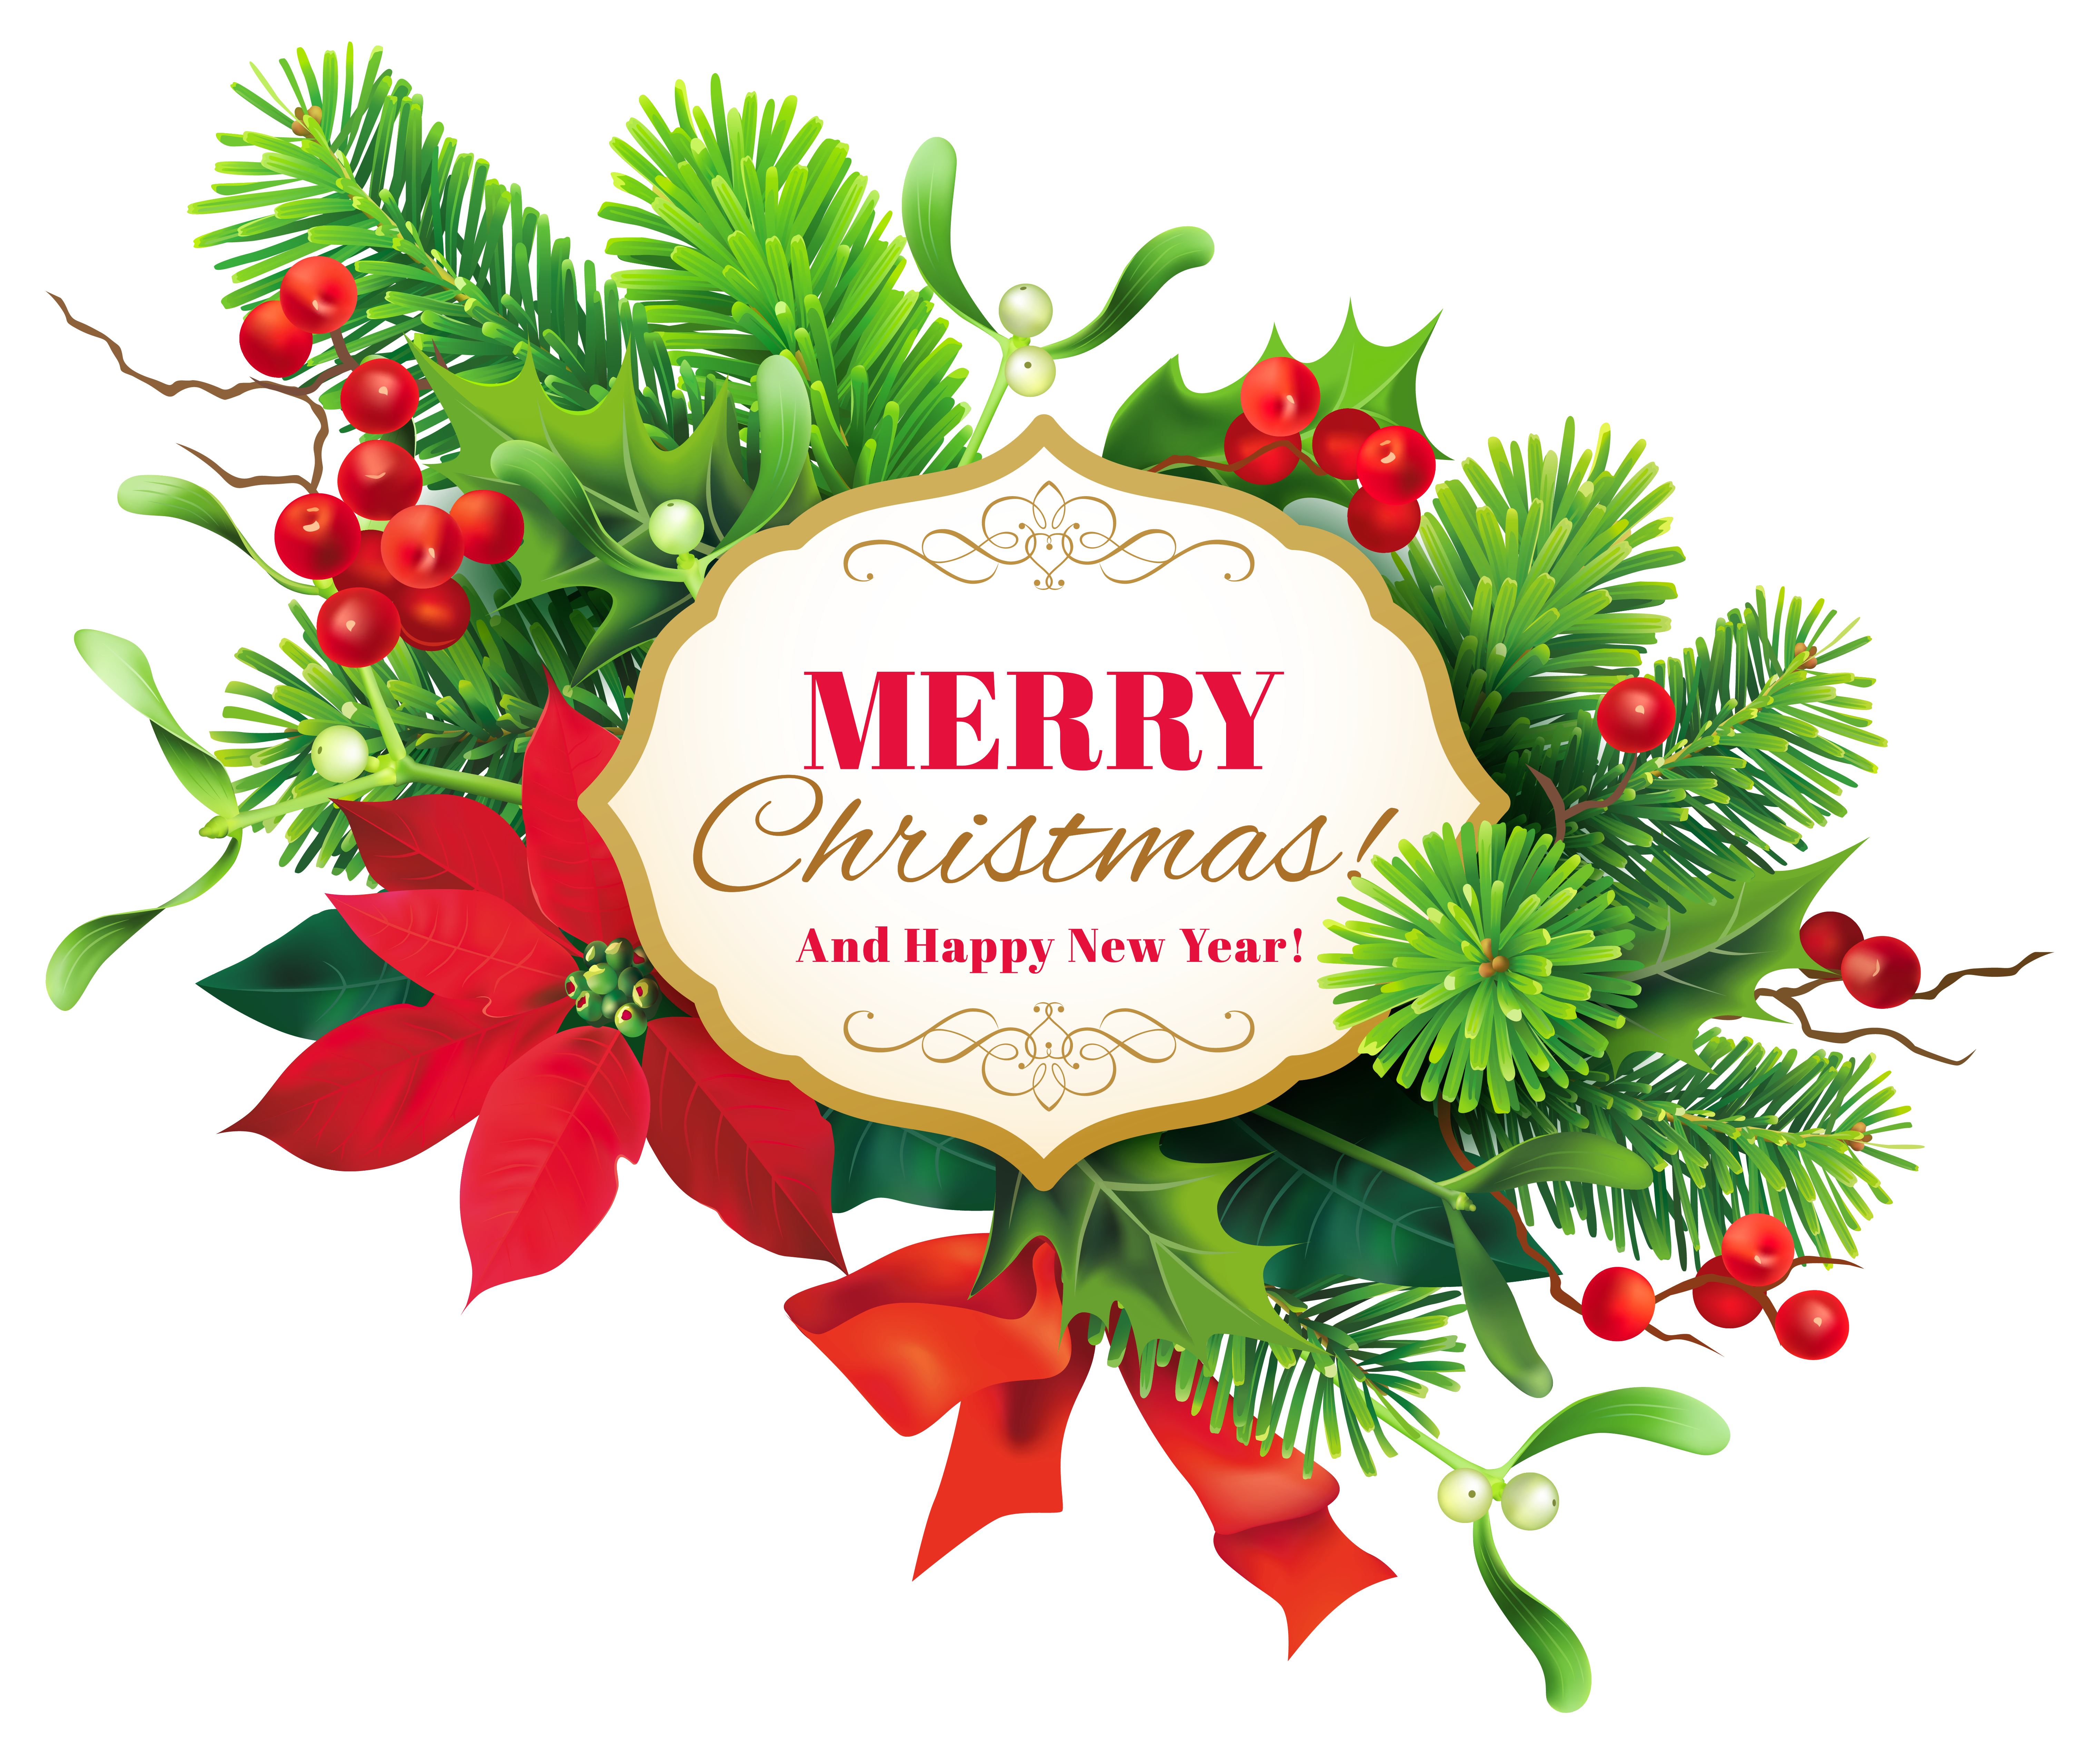 Merry christmas png images. Decor clipart image gallery